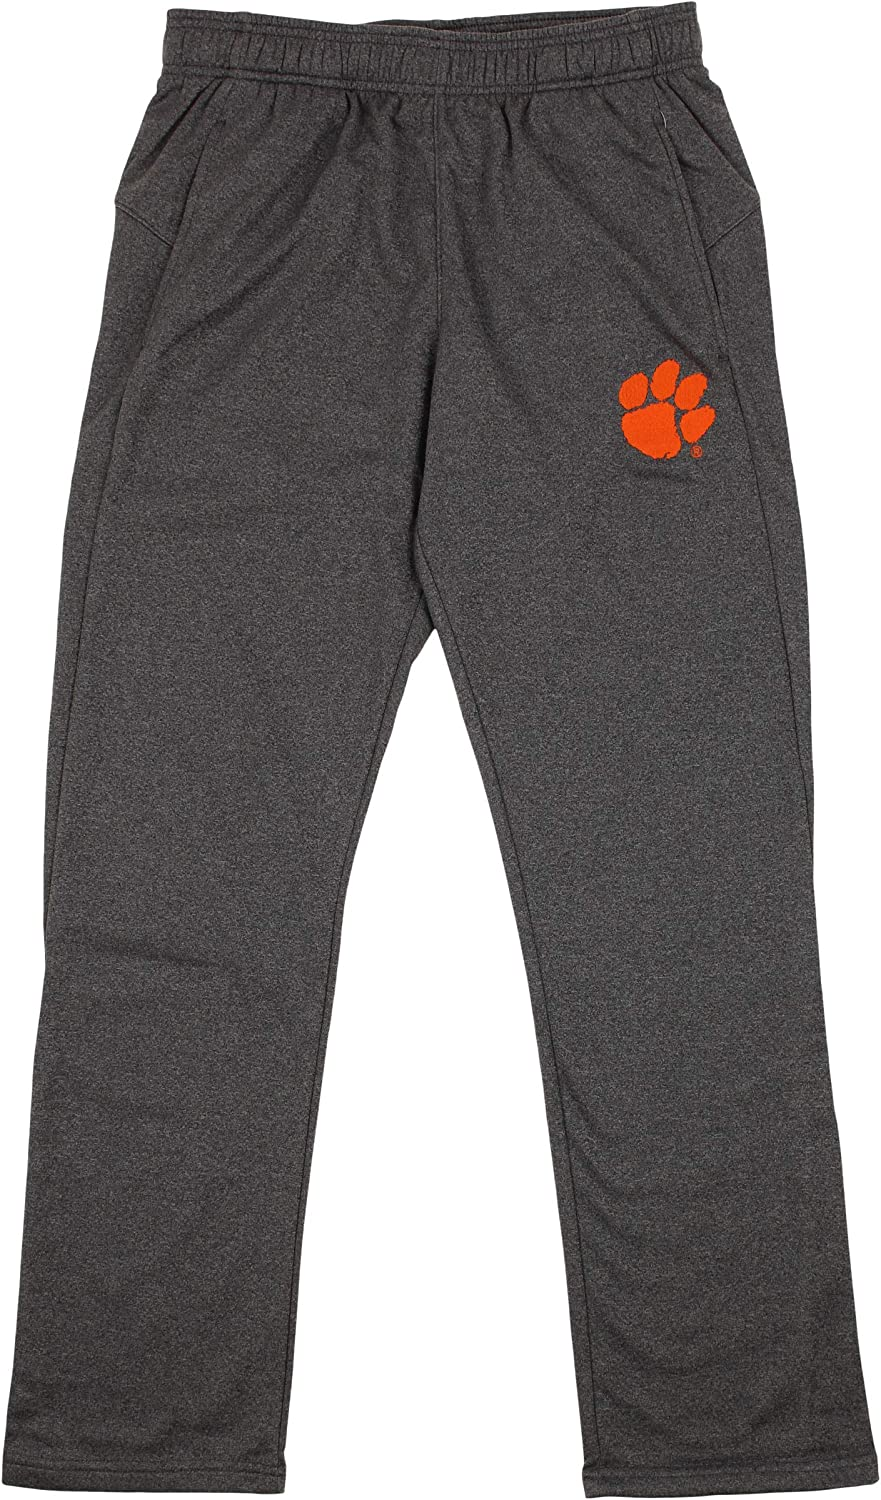 OuterStuff NCAA Mens Helix Track Pant Team Variation